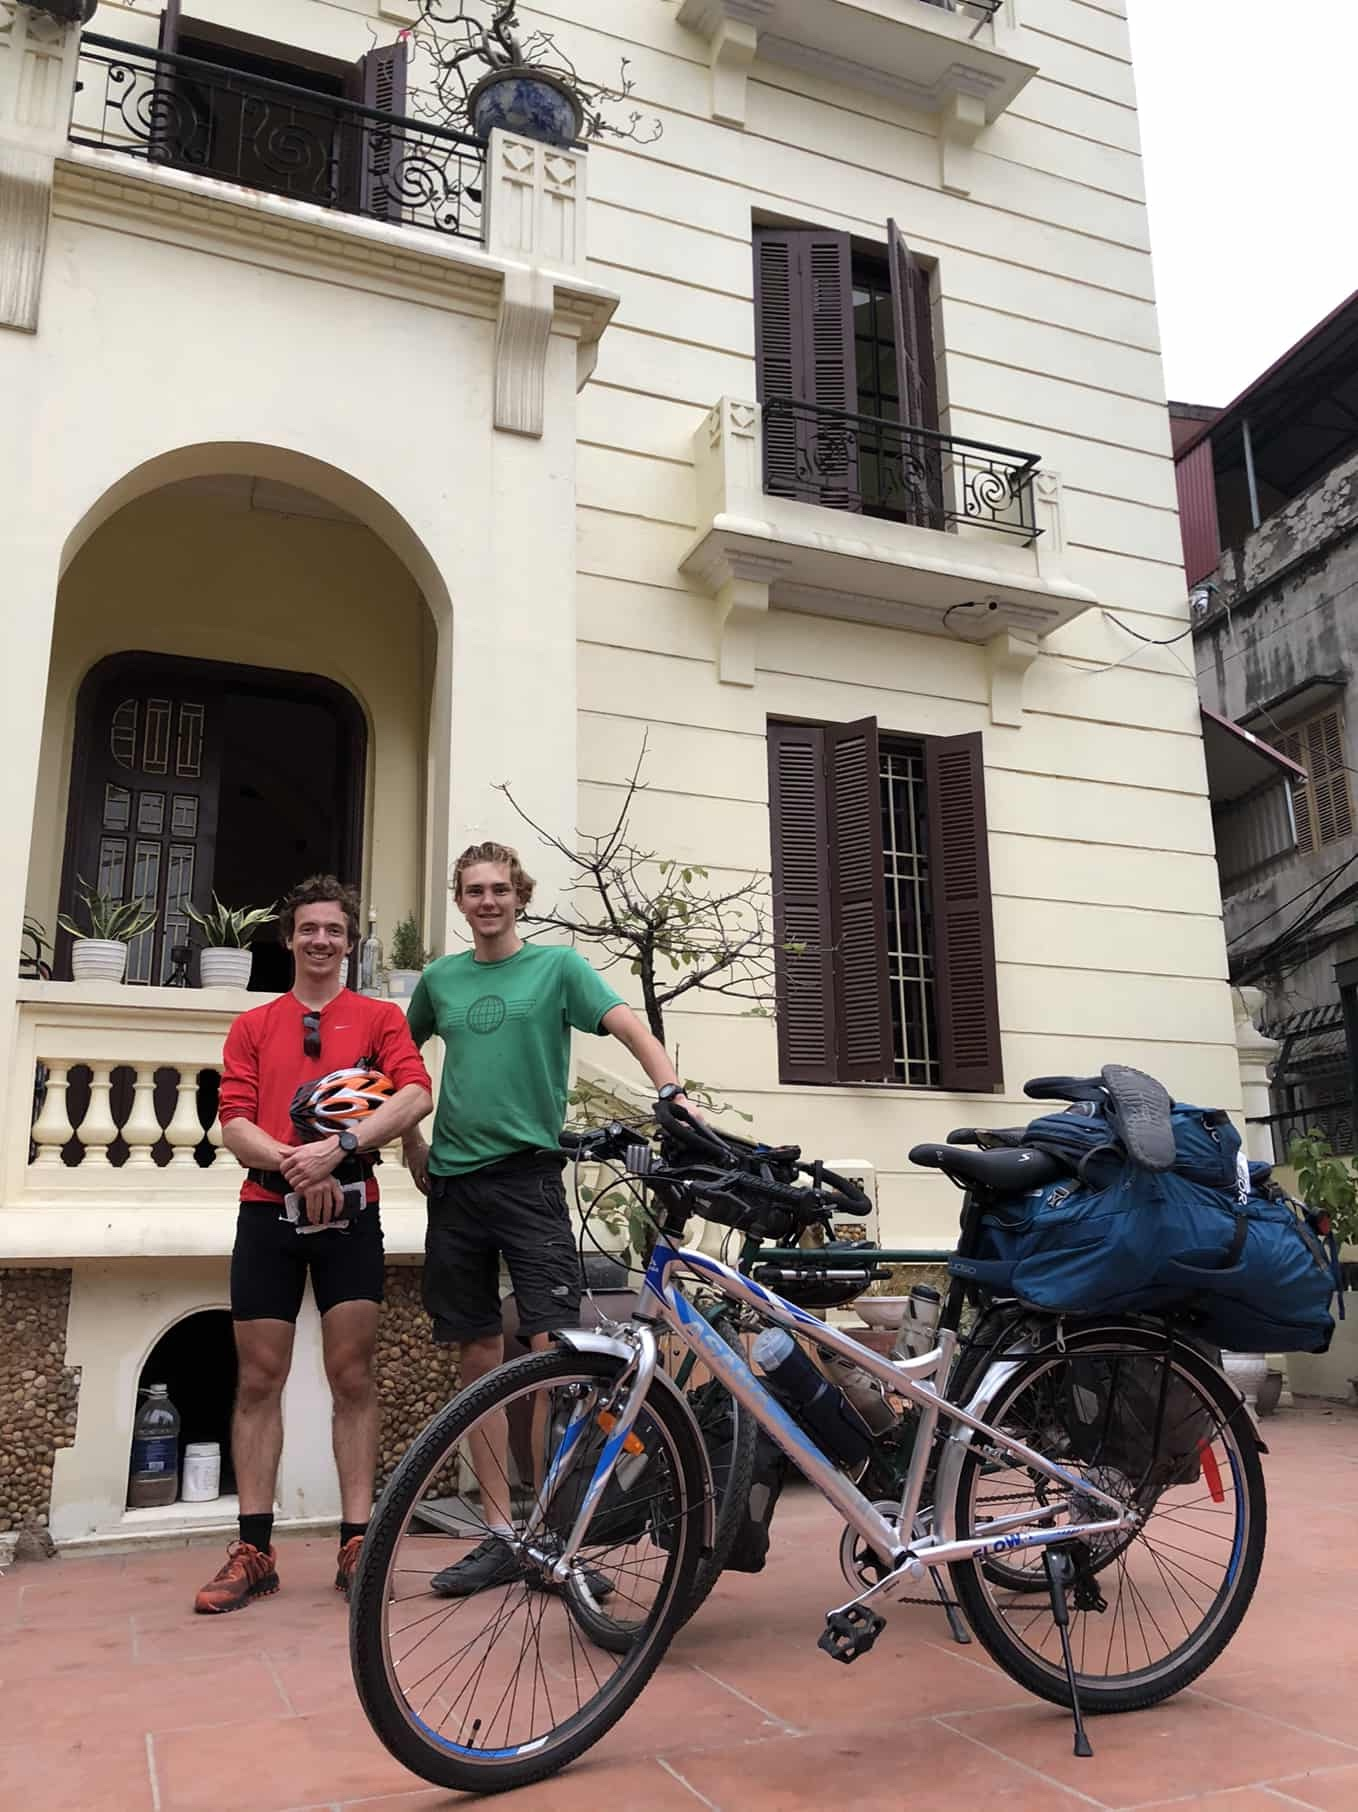 £100 Bike Challenge – Ben Around the World Diary – Day 143 – 7th November 2019